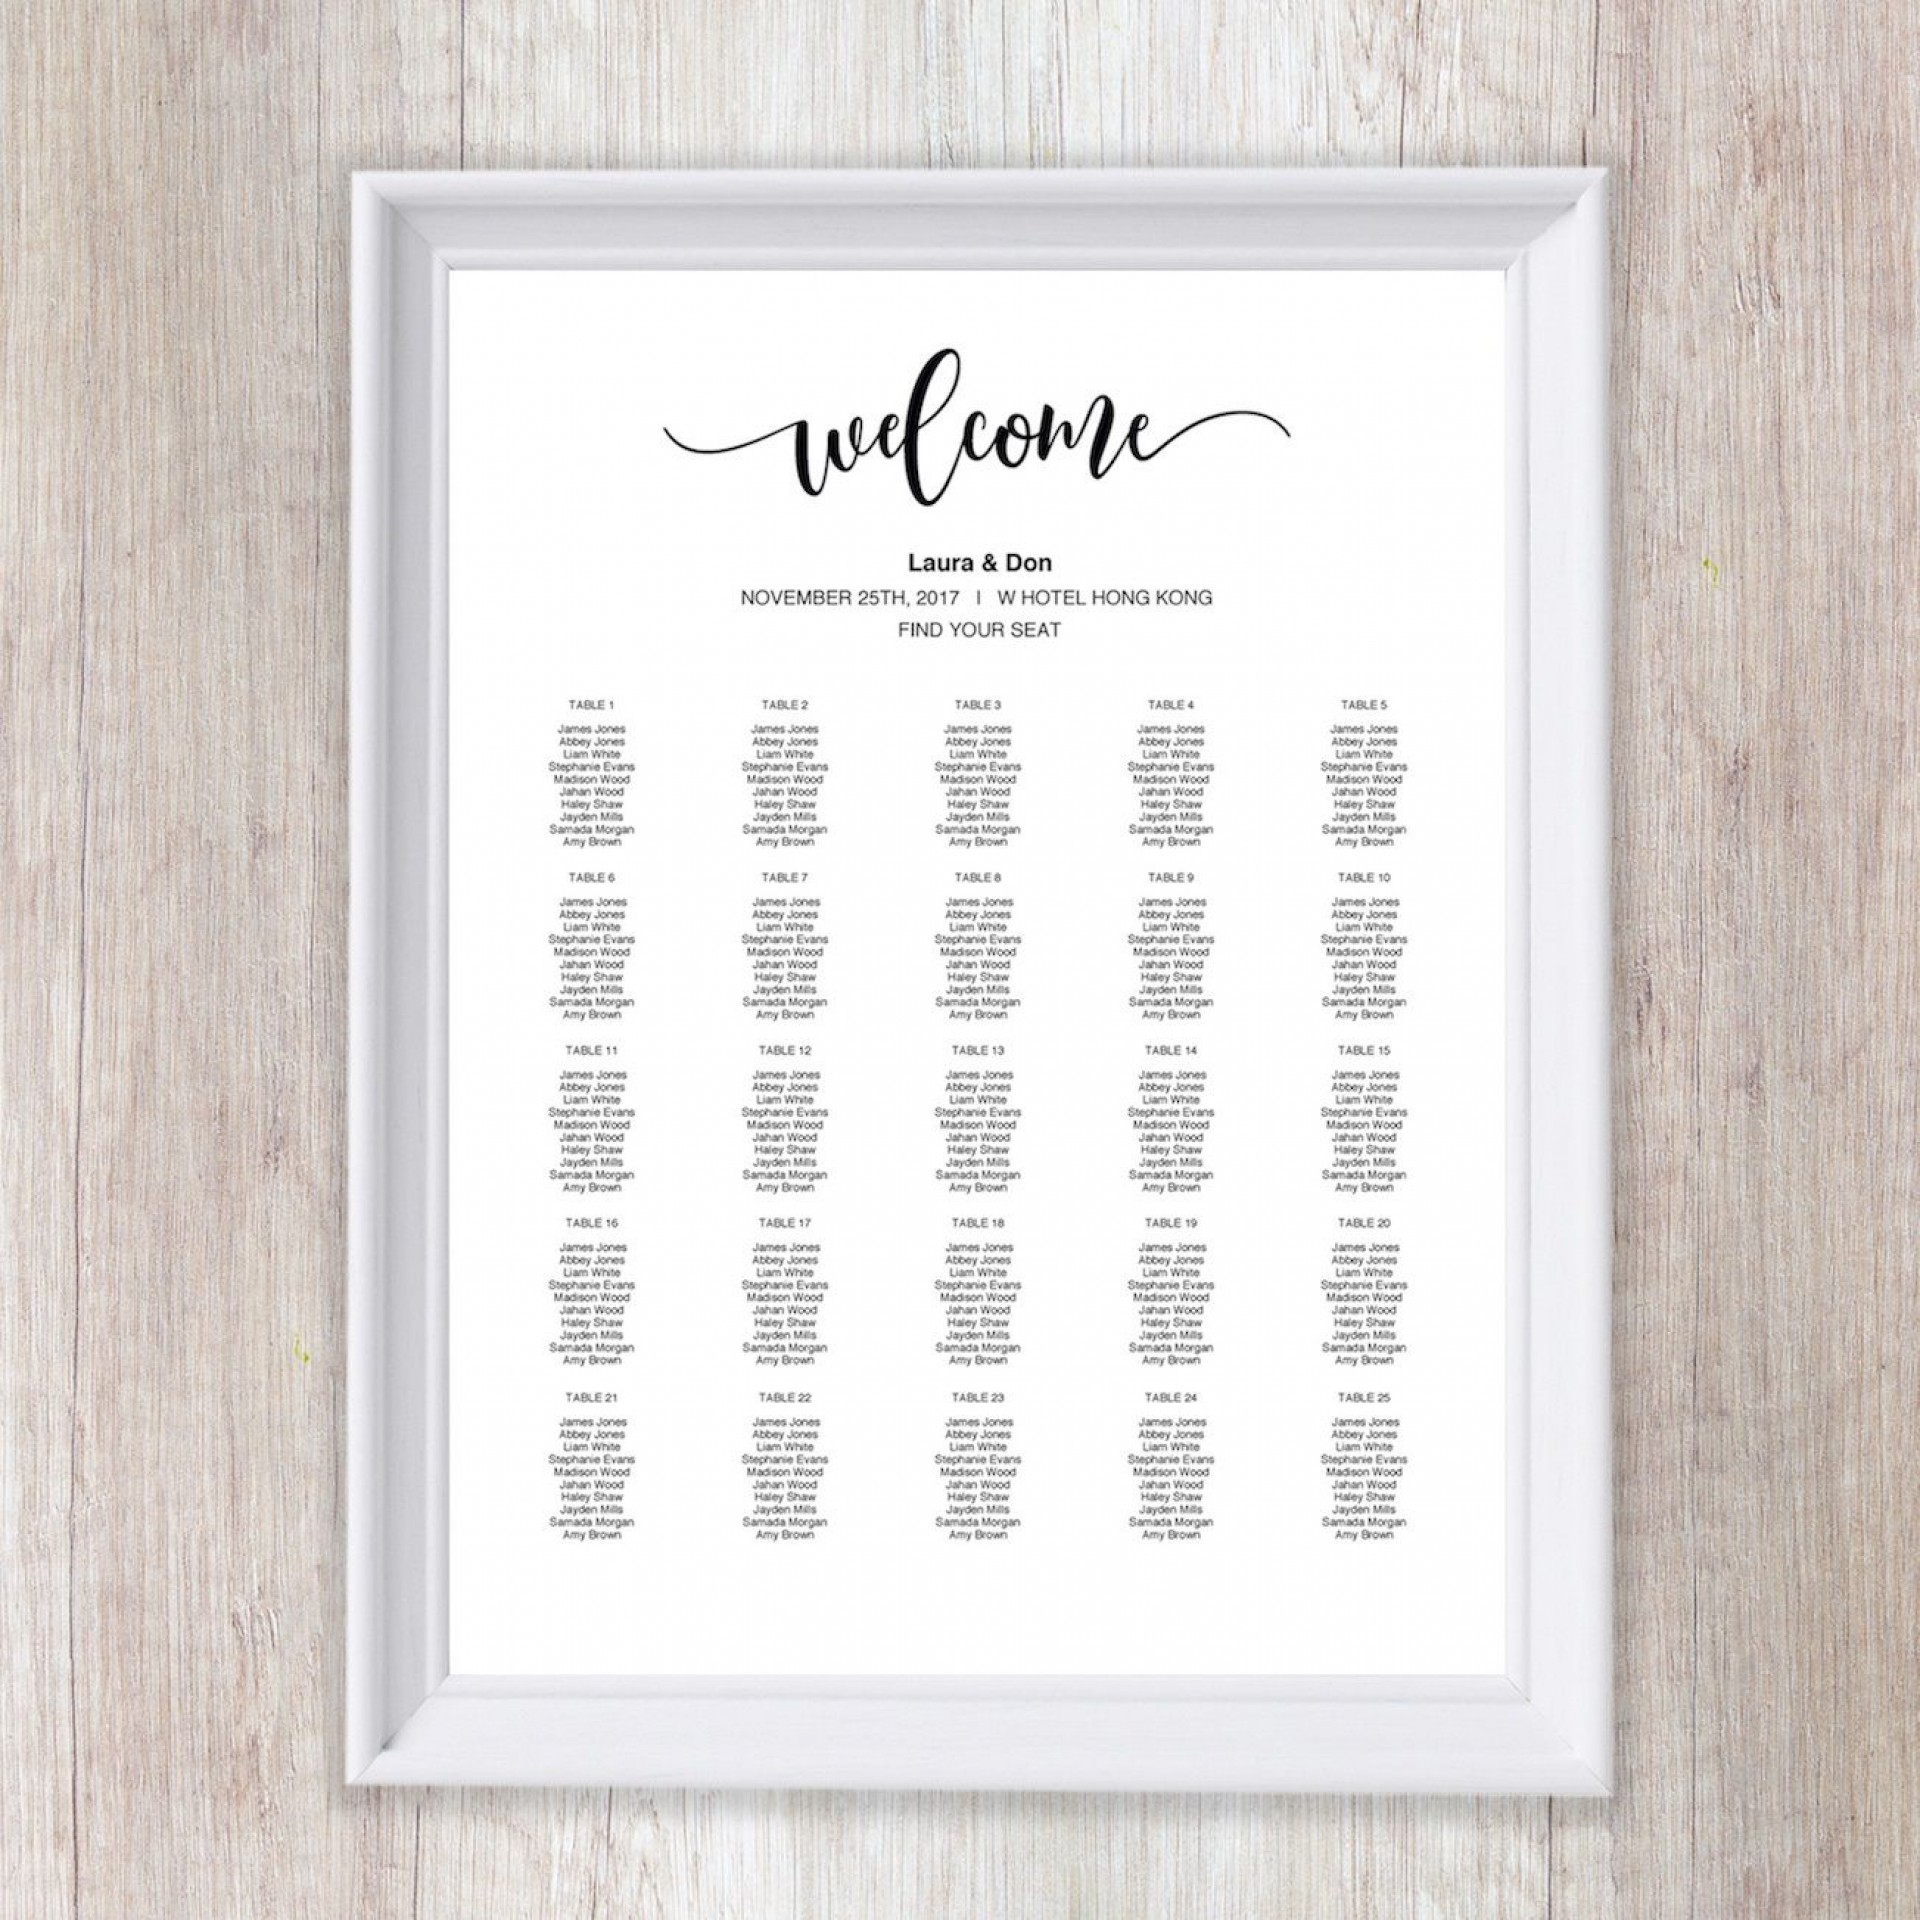 011 Wonderful Wedding Seating Chart Template Concept  Templates Plan Excel Word Microsoft1920